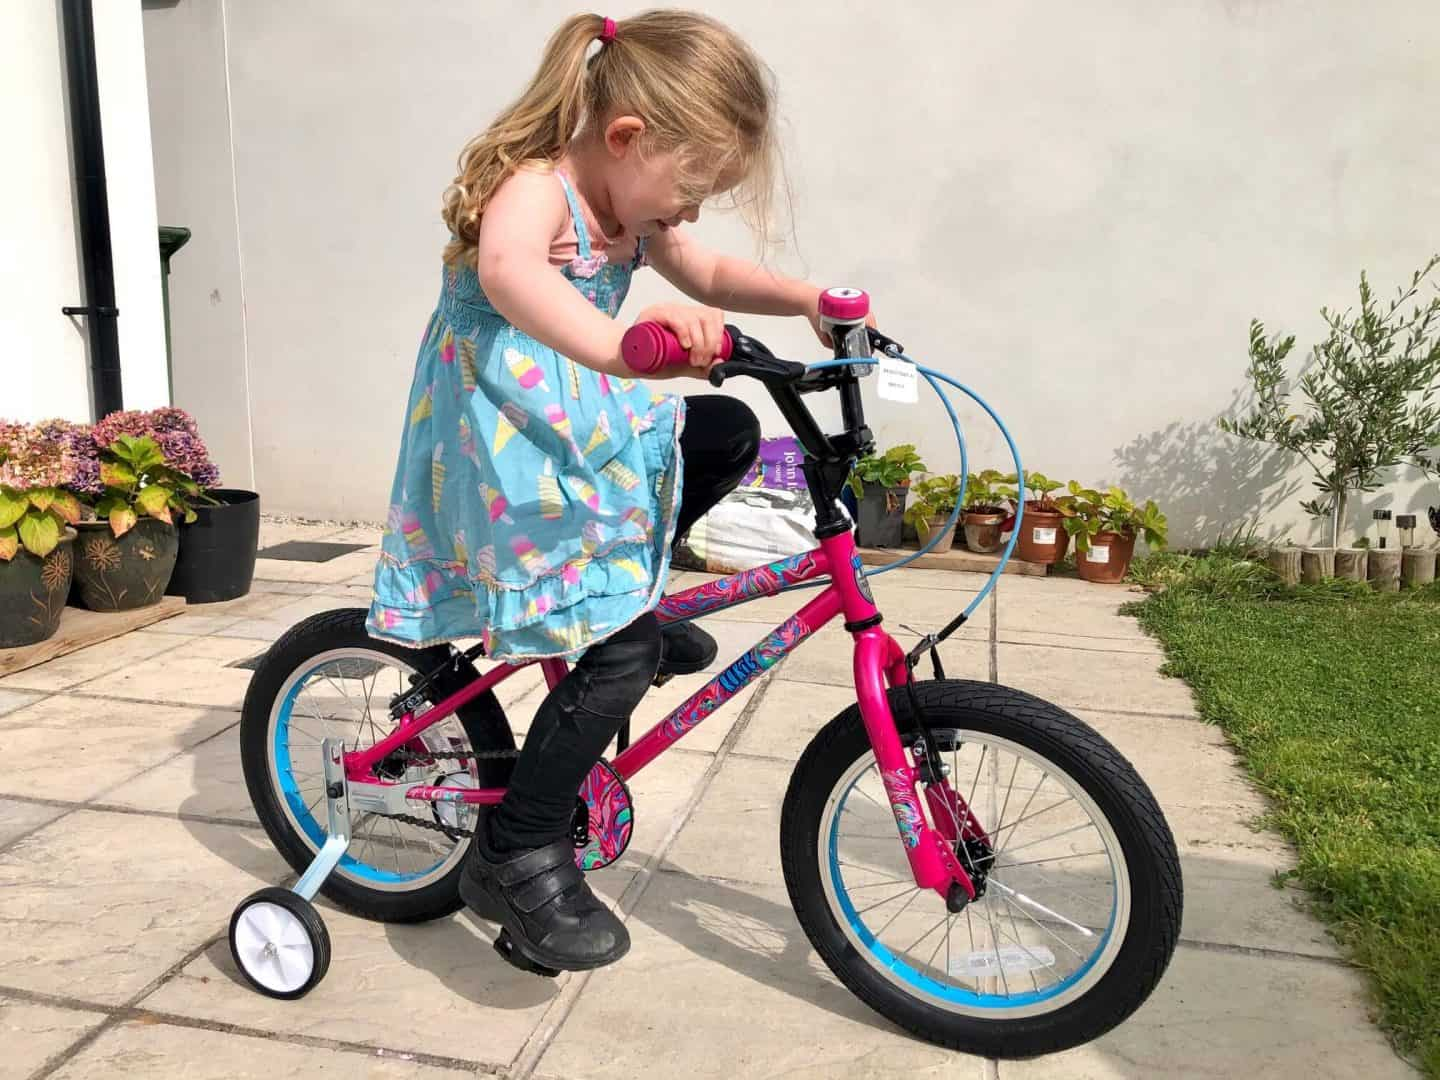 L on her new bike August 2020